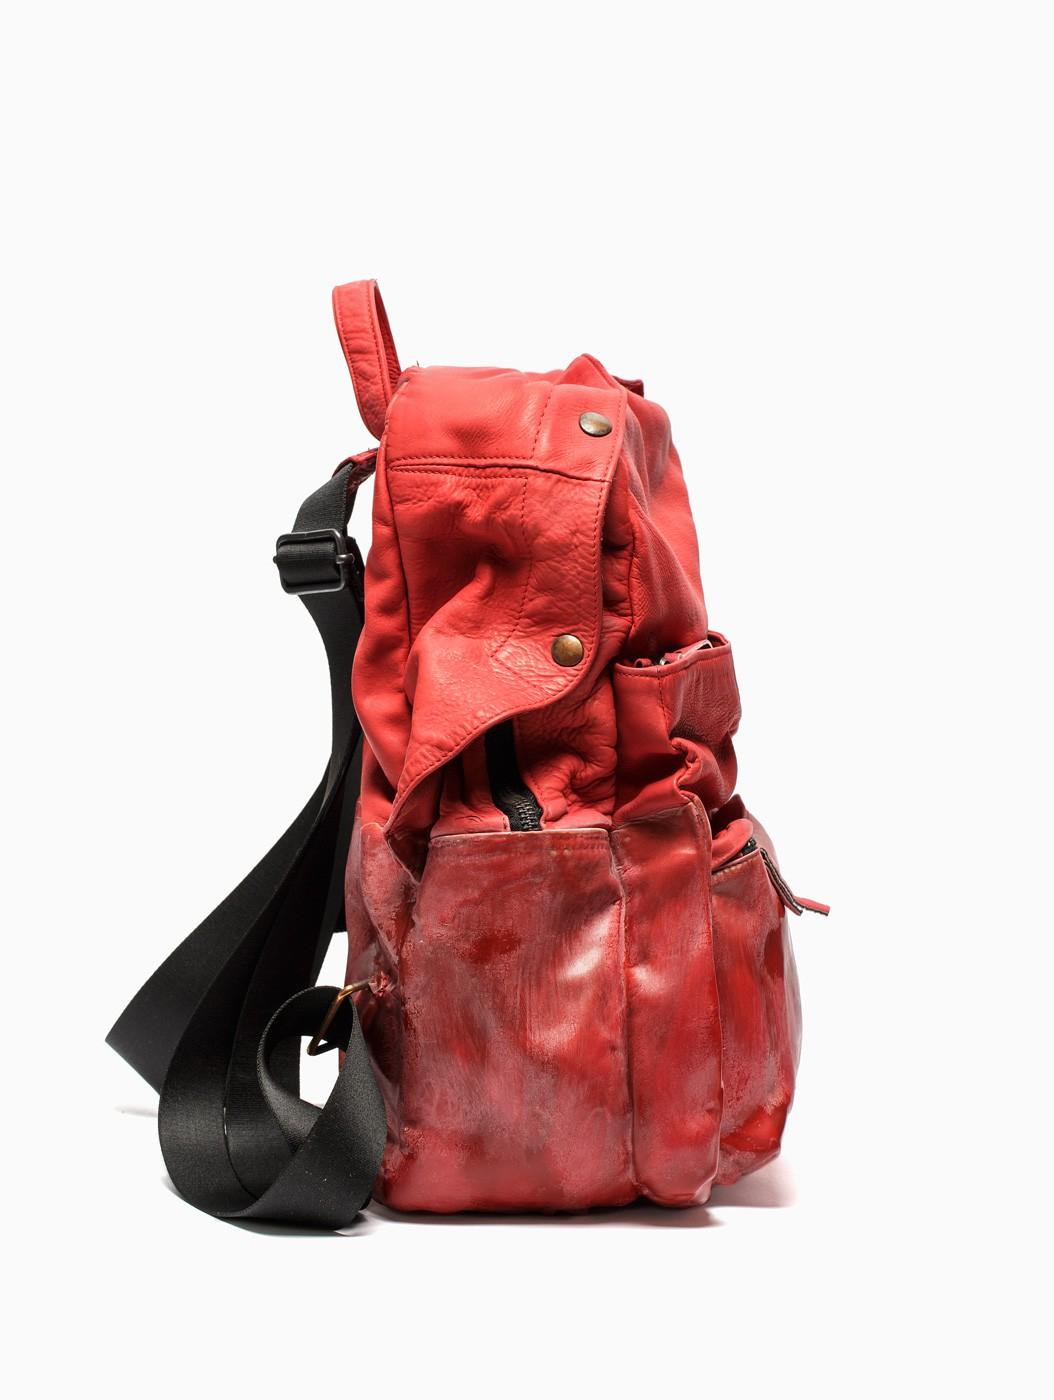 b07fa0d8bfc0 Lyst - Oxs Rubber Soul Leather Backpack in Red for Men